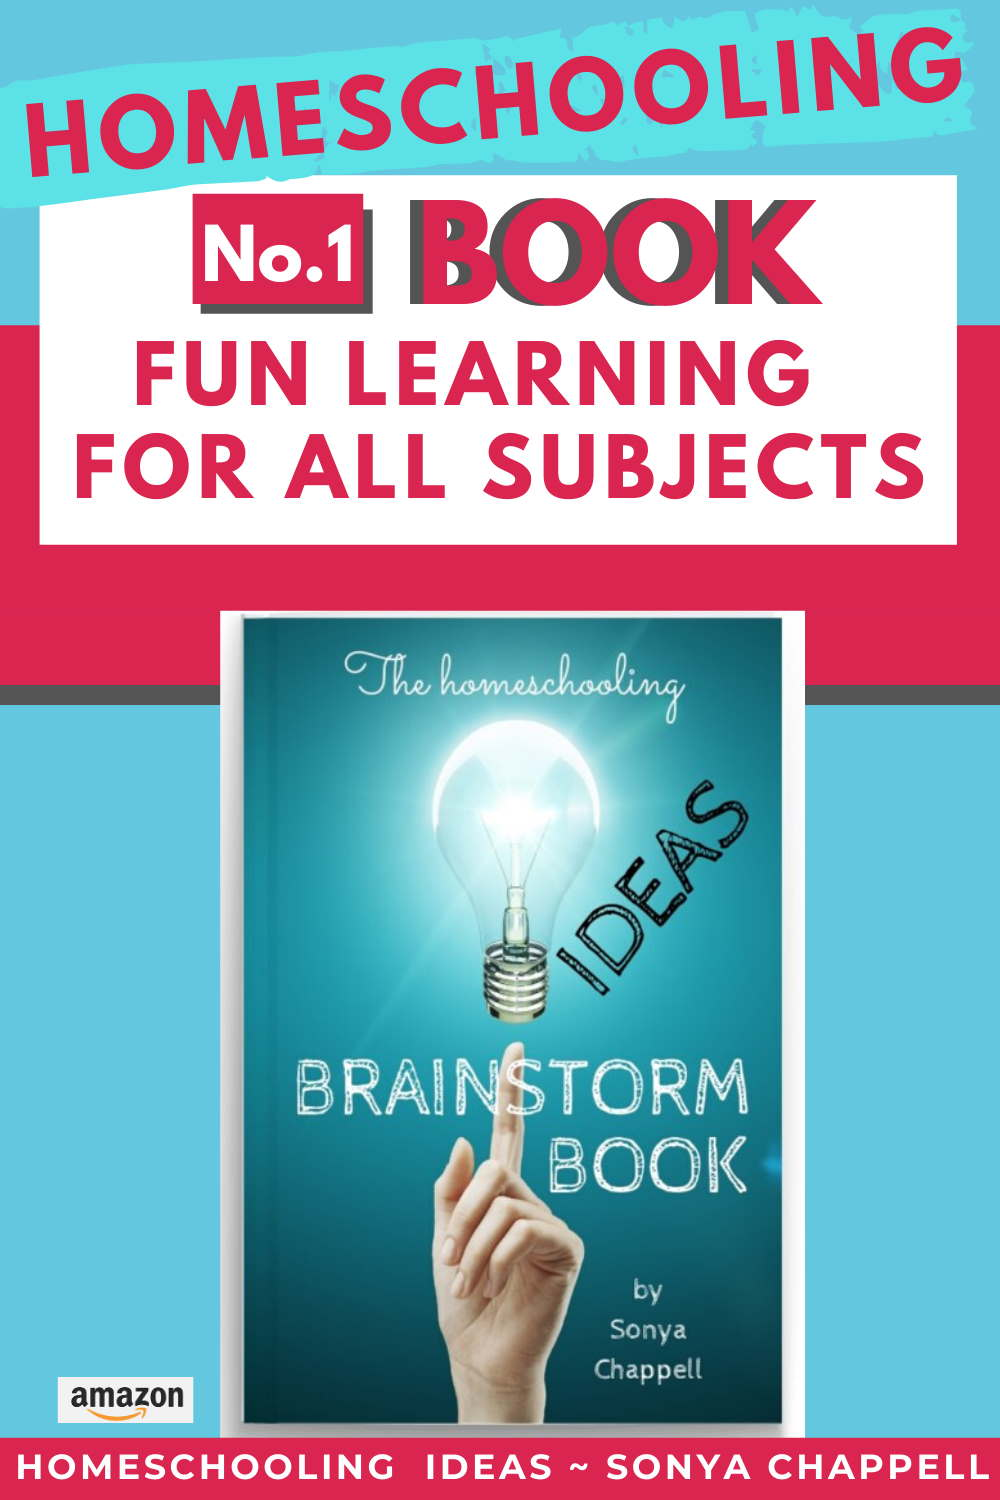 Homeschooling ideas for all subjects with fun learning activities